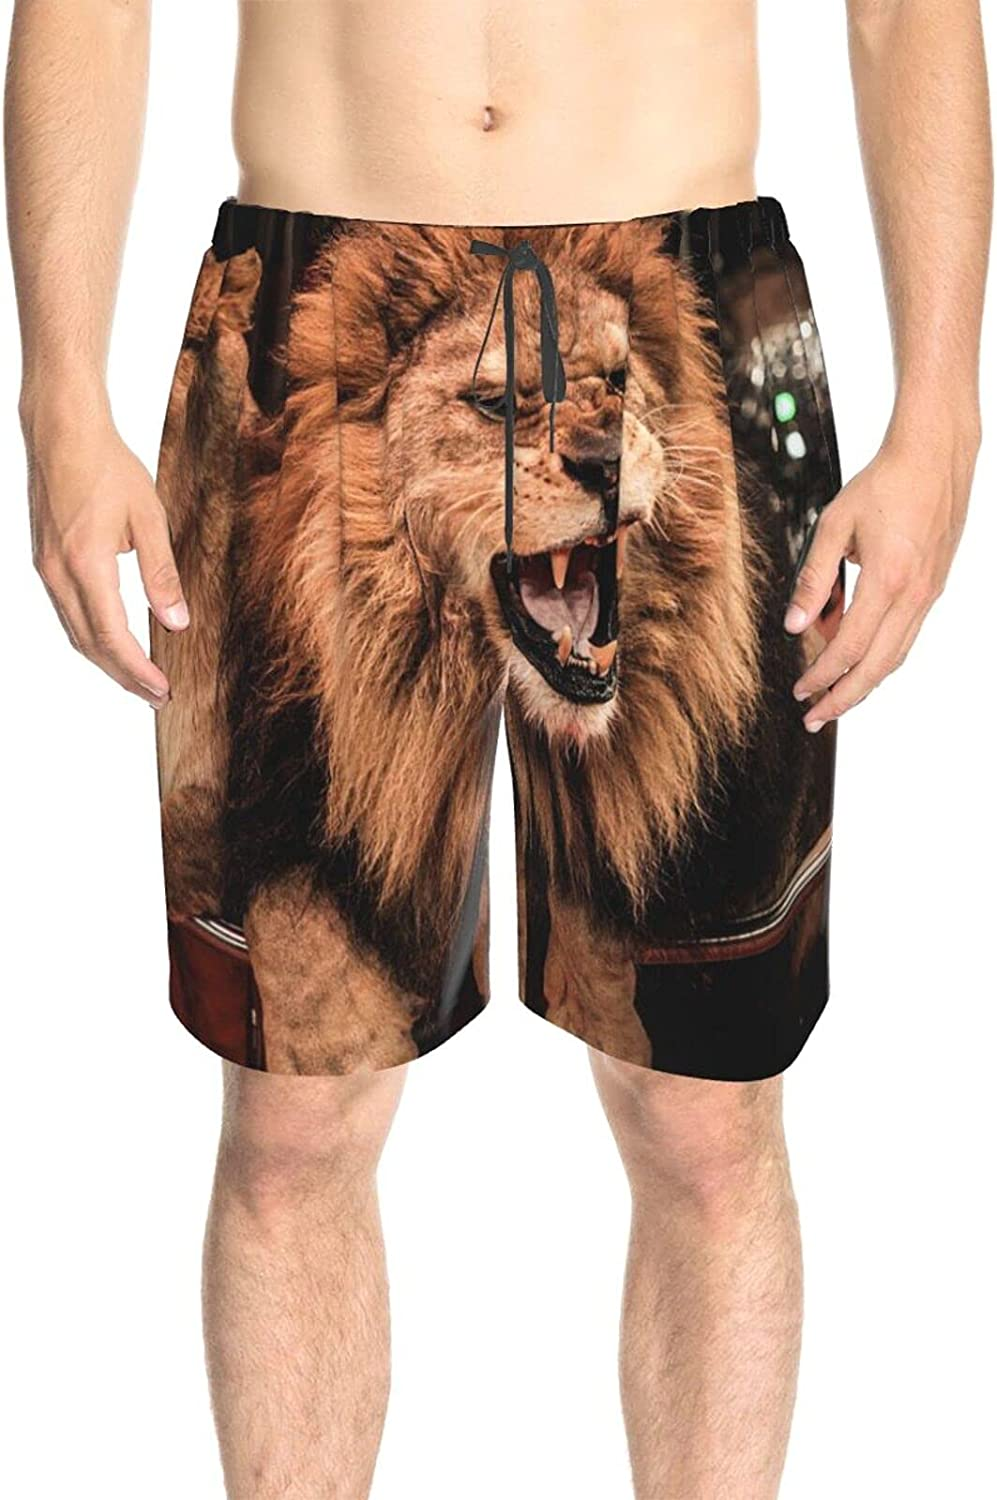 JINJUELS Mens Swim Trunks Angry Lion Bathing Suit Boardshorts Fast Dry Fashion Swimwear Bathing Suits with Mesh Lining